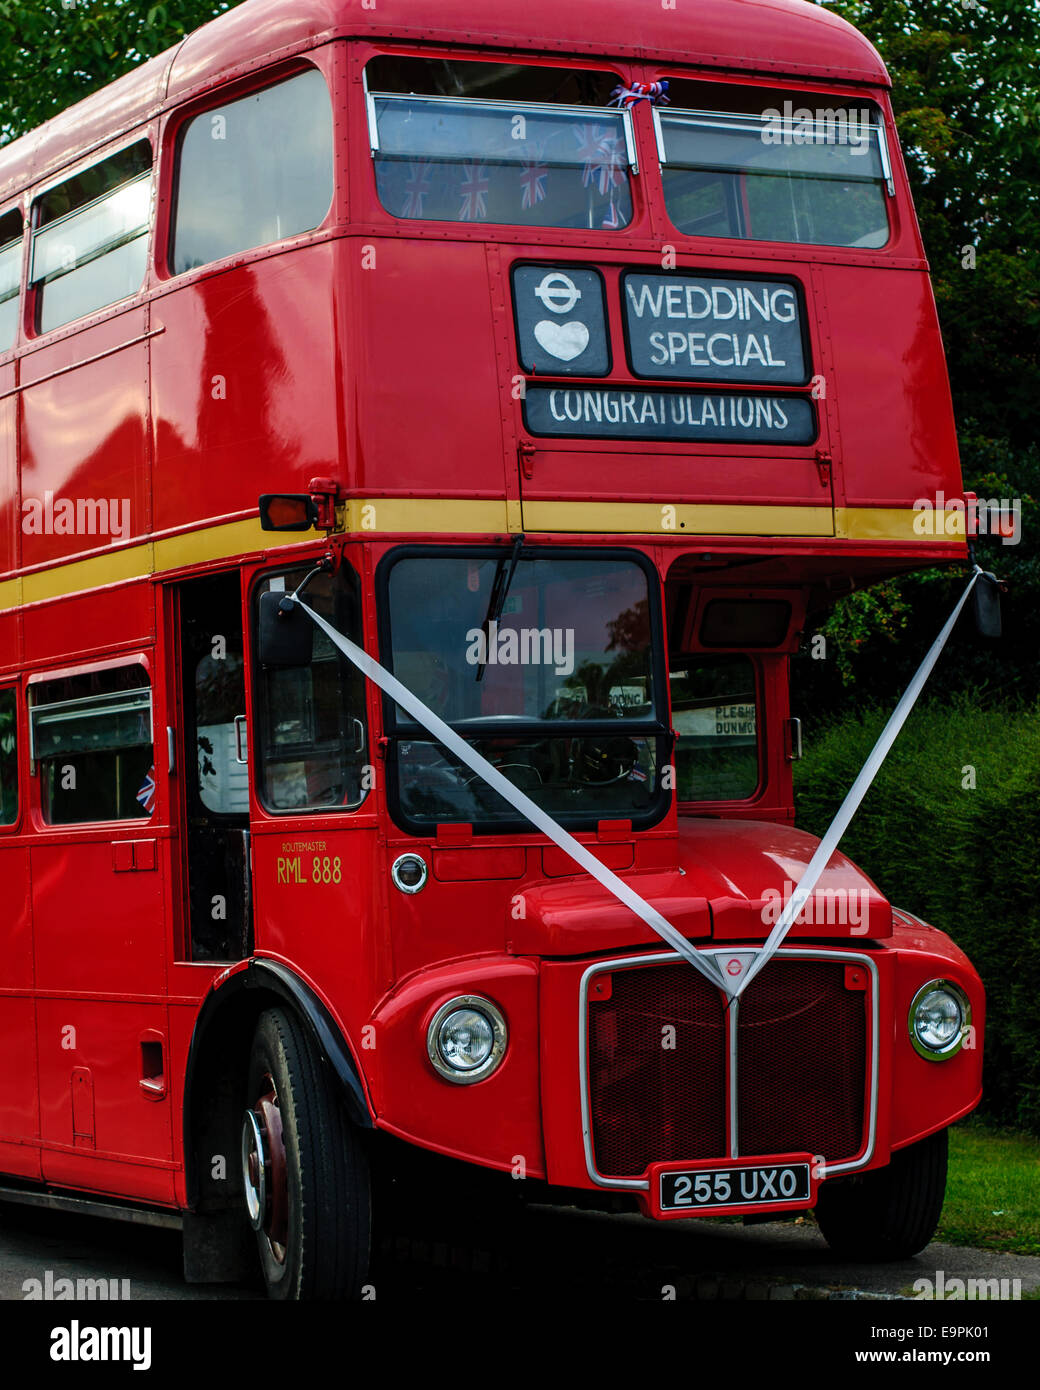 Old red double decker bus decorated for wedding. - Stock Image